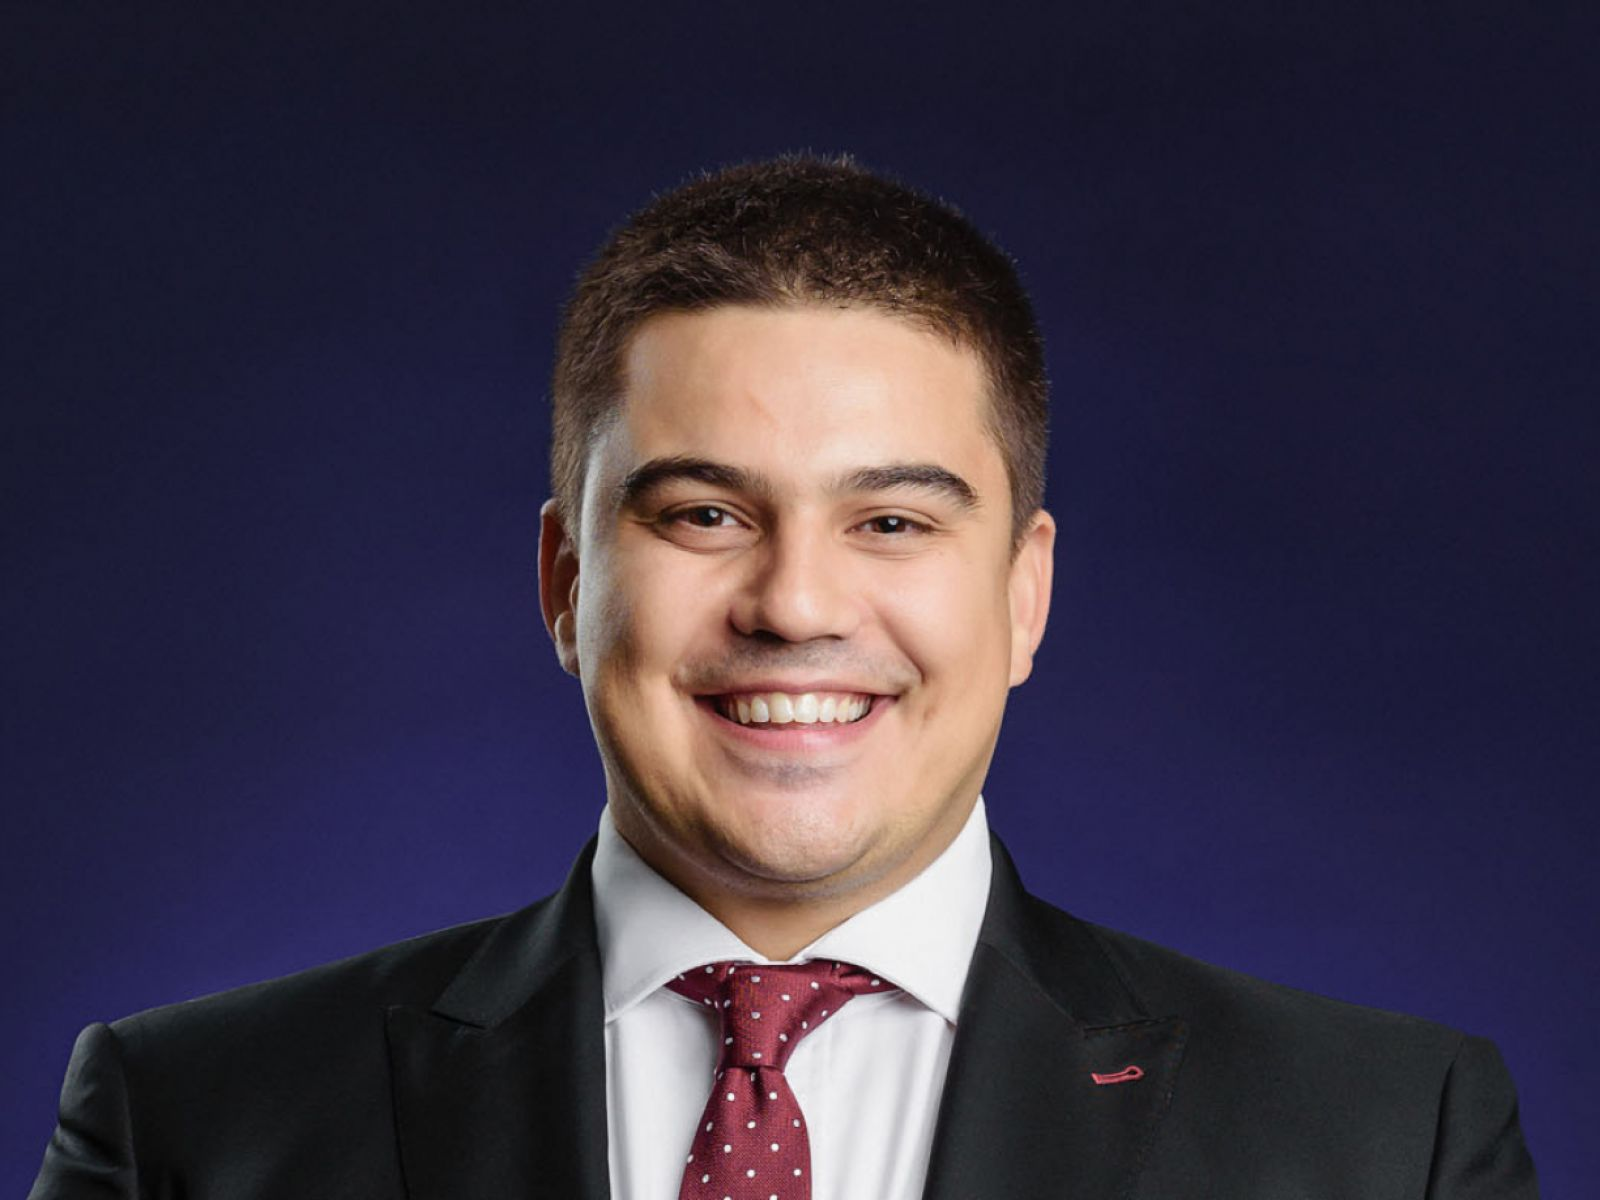 Mihai Păduroiu in Business Magazin top 100 Young Managers